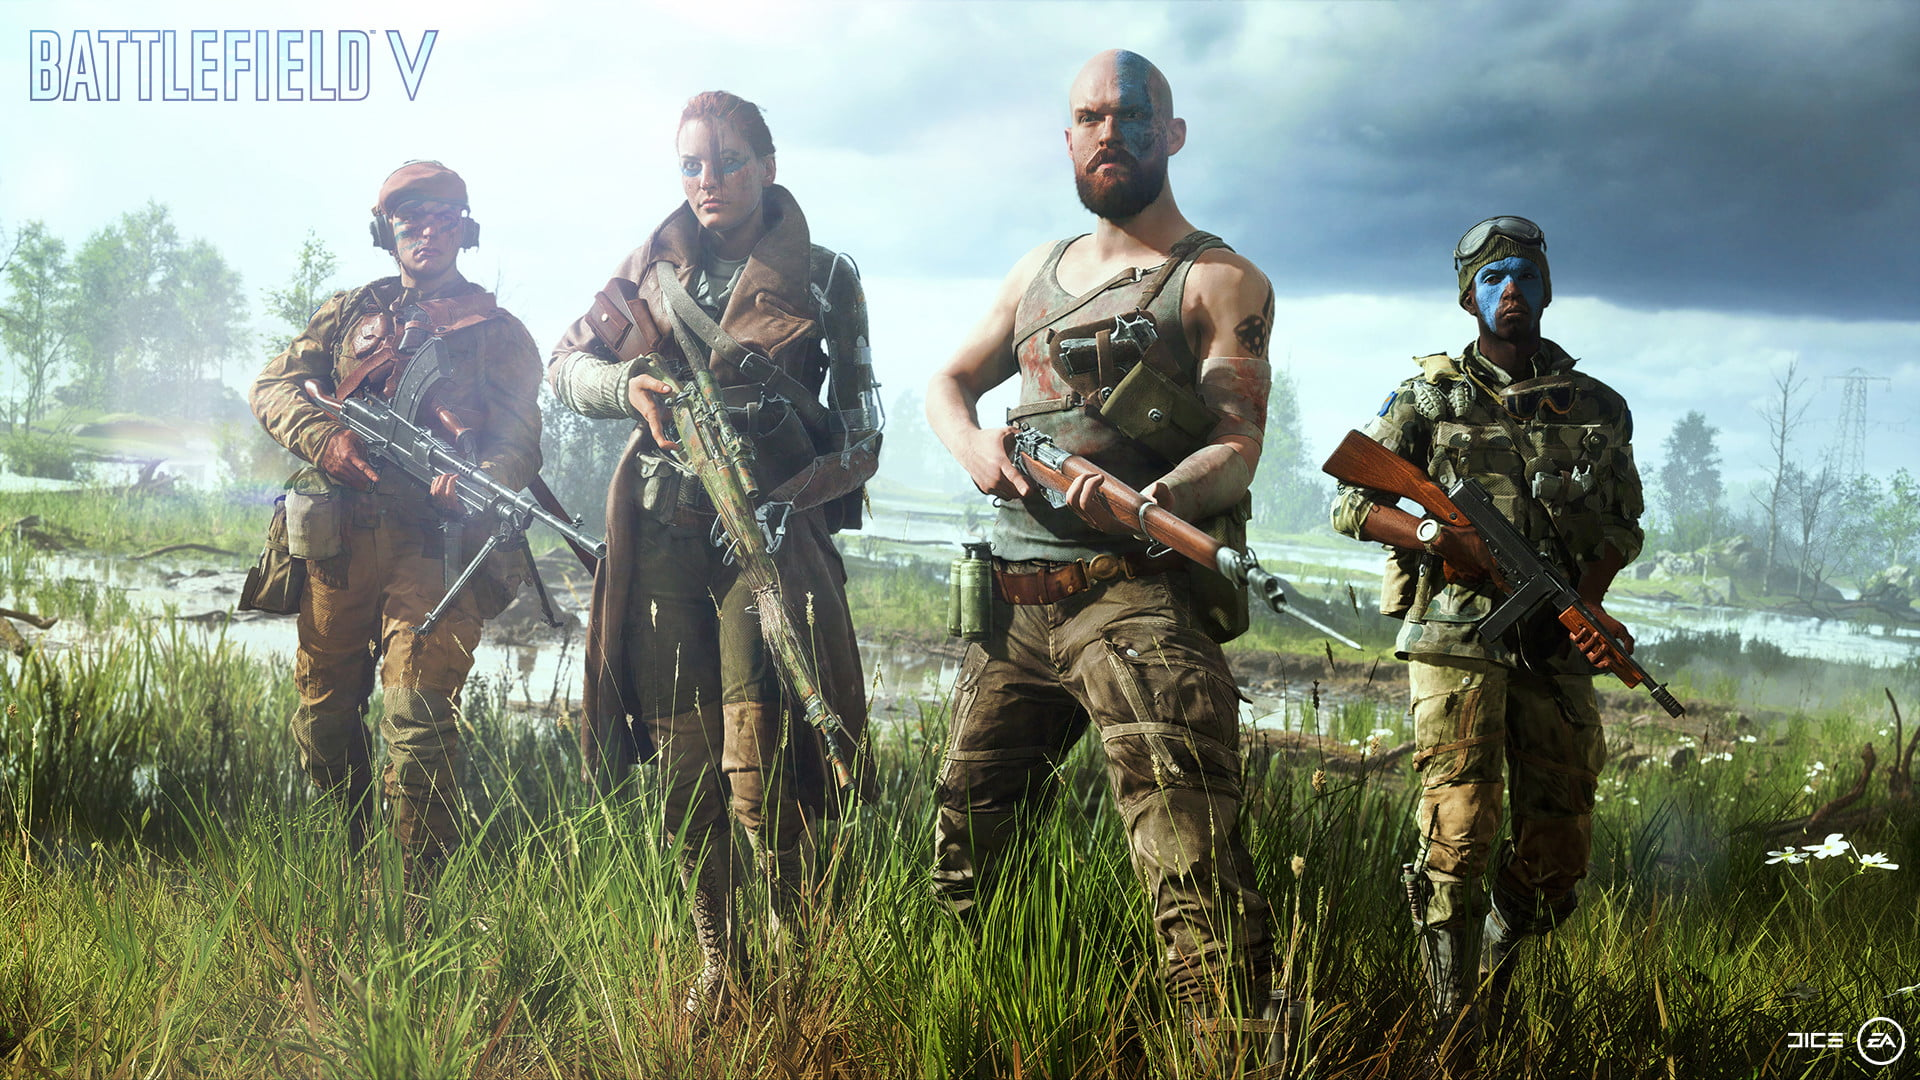 'Battlefield V' uses WWII to make a thoroughly modern video game